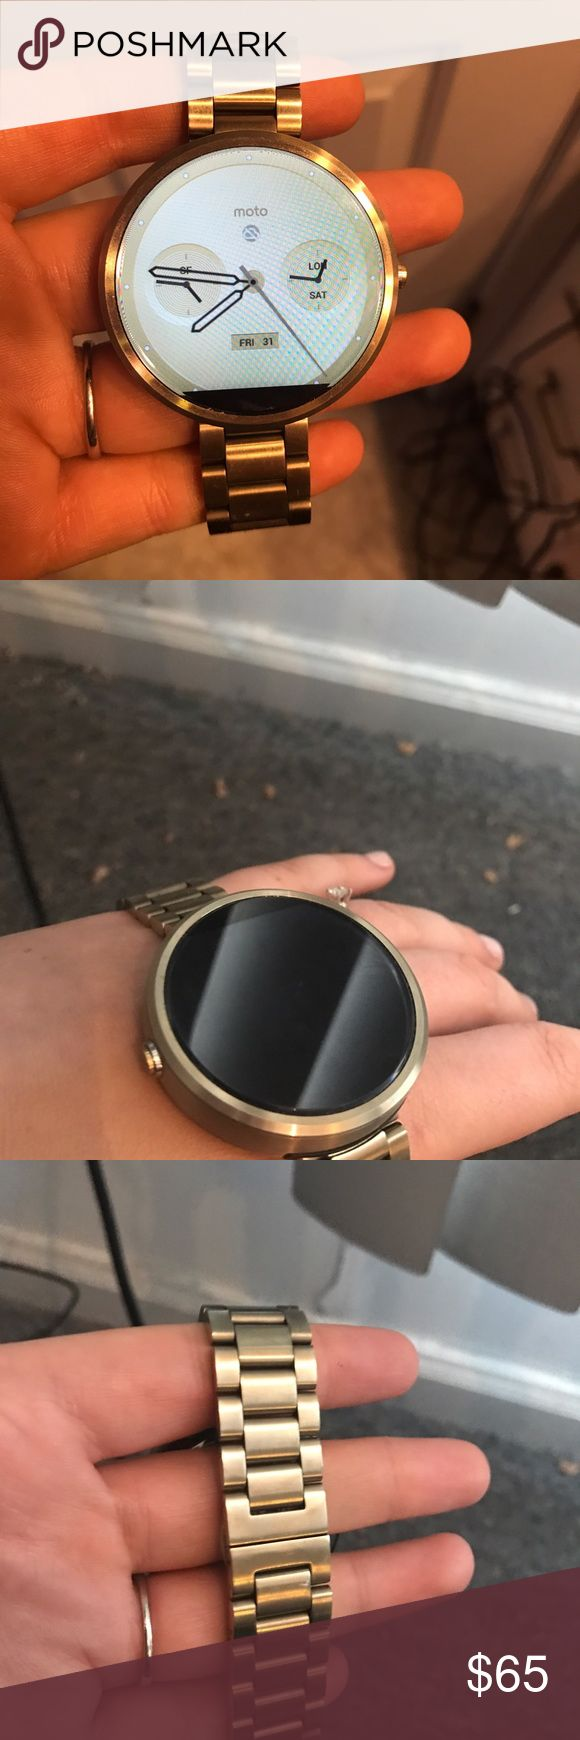 Motorola 360 Smartwatch Like new condition Moto360 smartwatch! Works best with Android but also iPhone compatible. Lovely champagne color band (can be switched out). All offers considered. Motorola  Jewelry